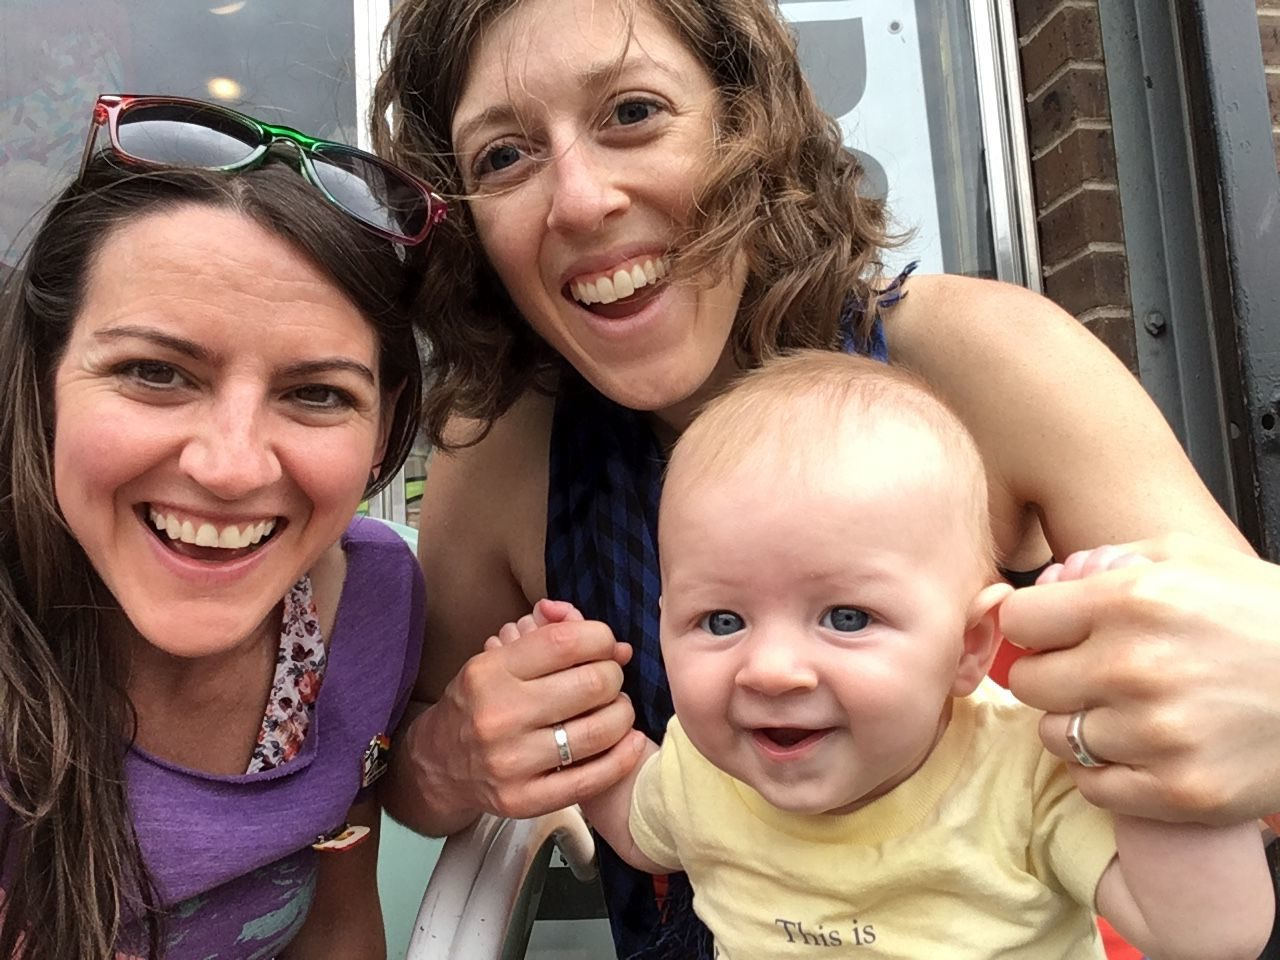 The Schneider family (left to right): Rachelle, Megan and son Avi. #submittedImage